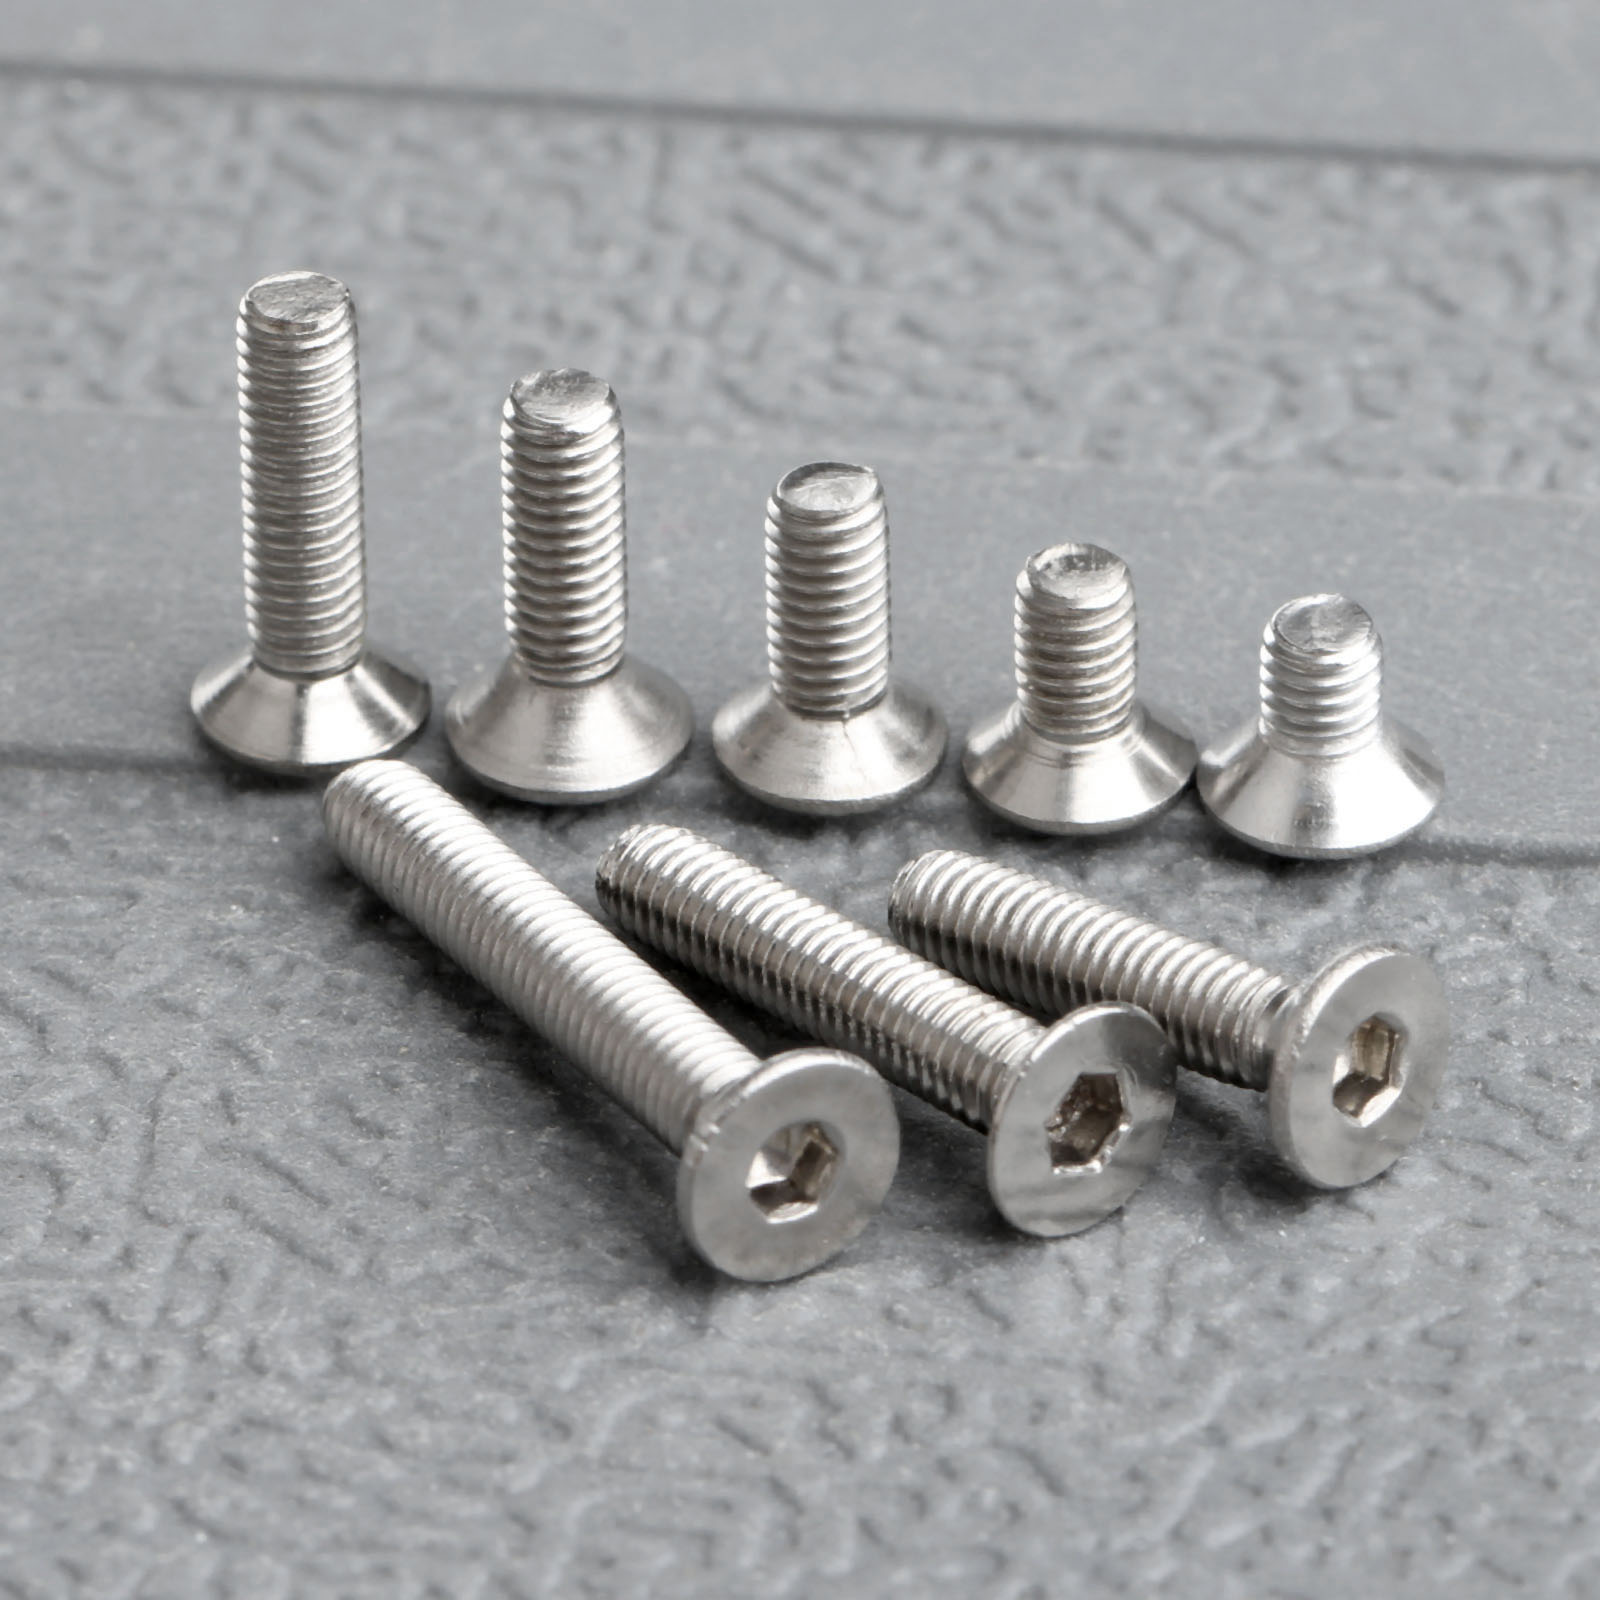 100Pcs M3 Stainless Steel Screws Pan Hex Socket Head Cap Screw Furniture Fastener Bolt <font><b>M3x5mm</b></font>/6mm/8mm/10mm/12mm/14mm/16mm/20mm image